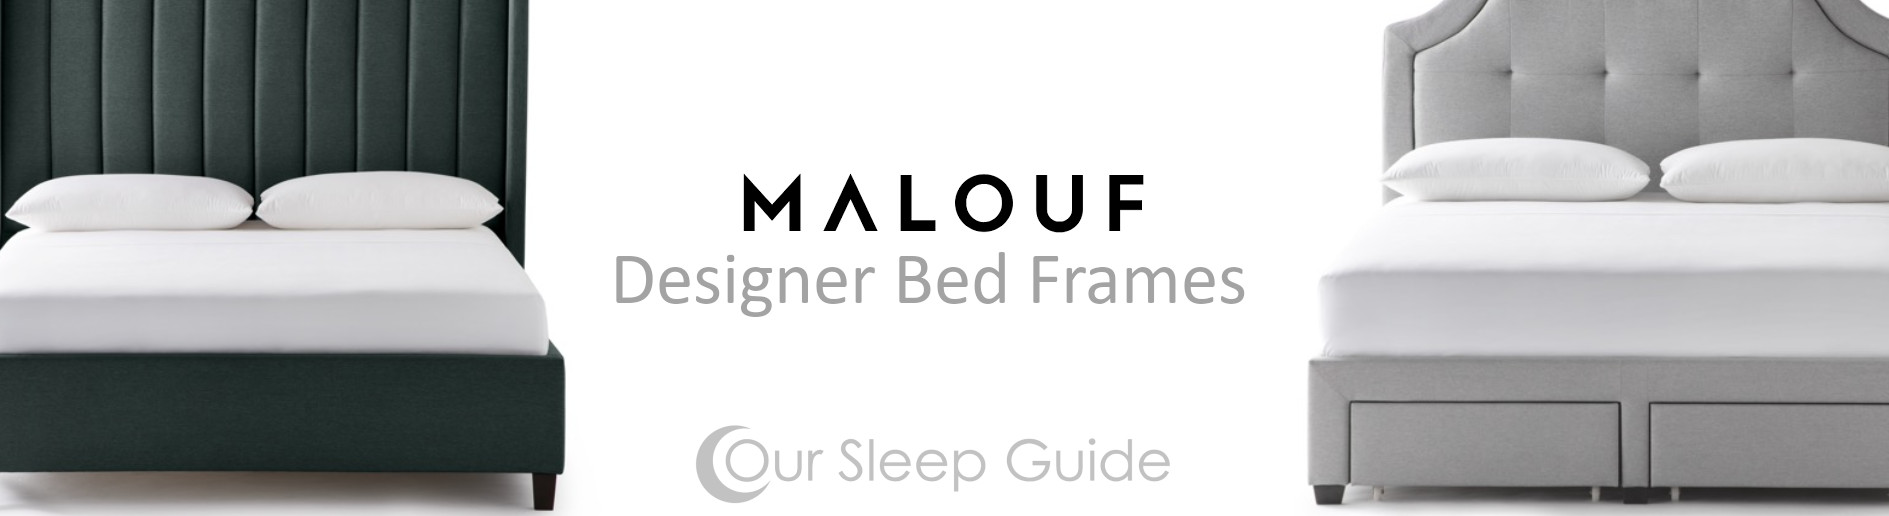 malouf designer bed frame our sleep guide